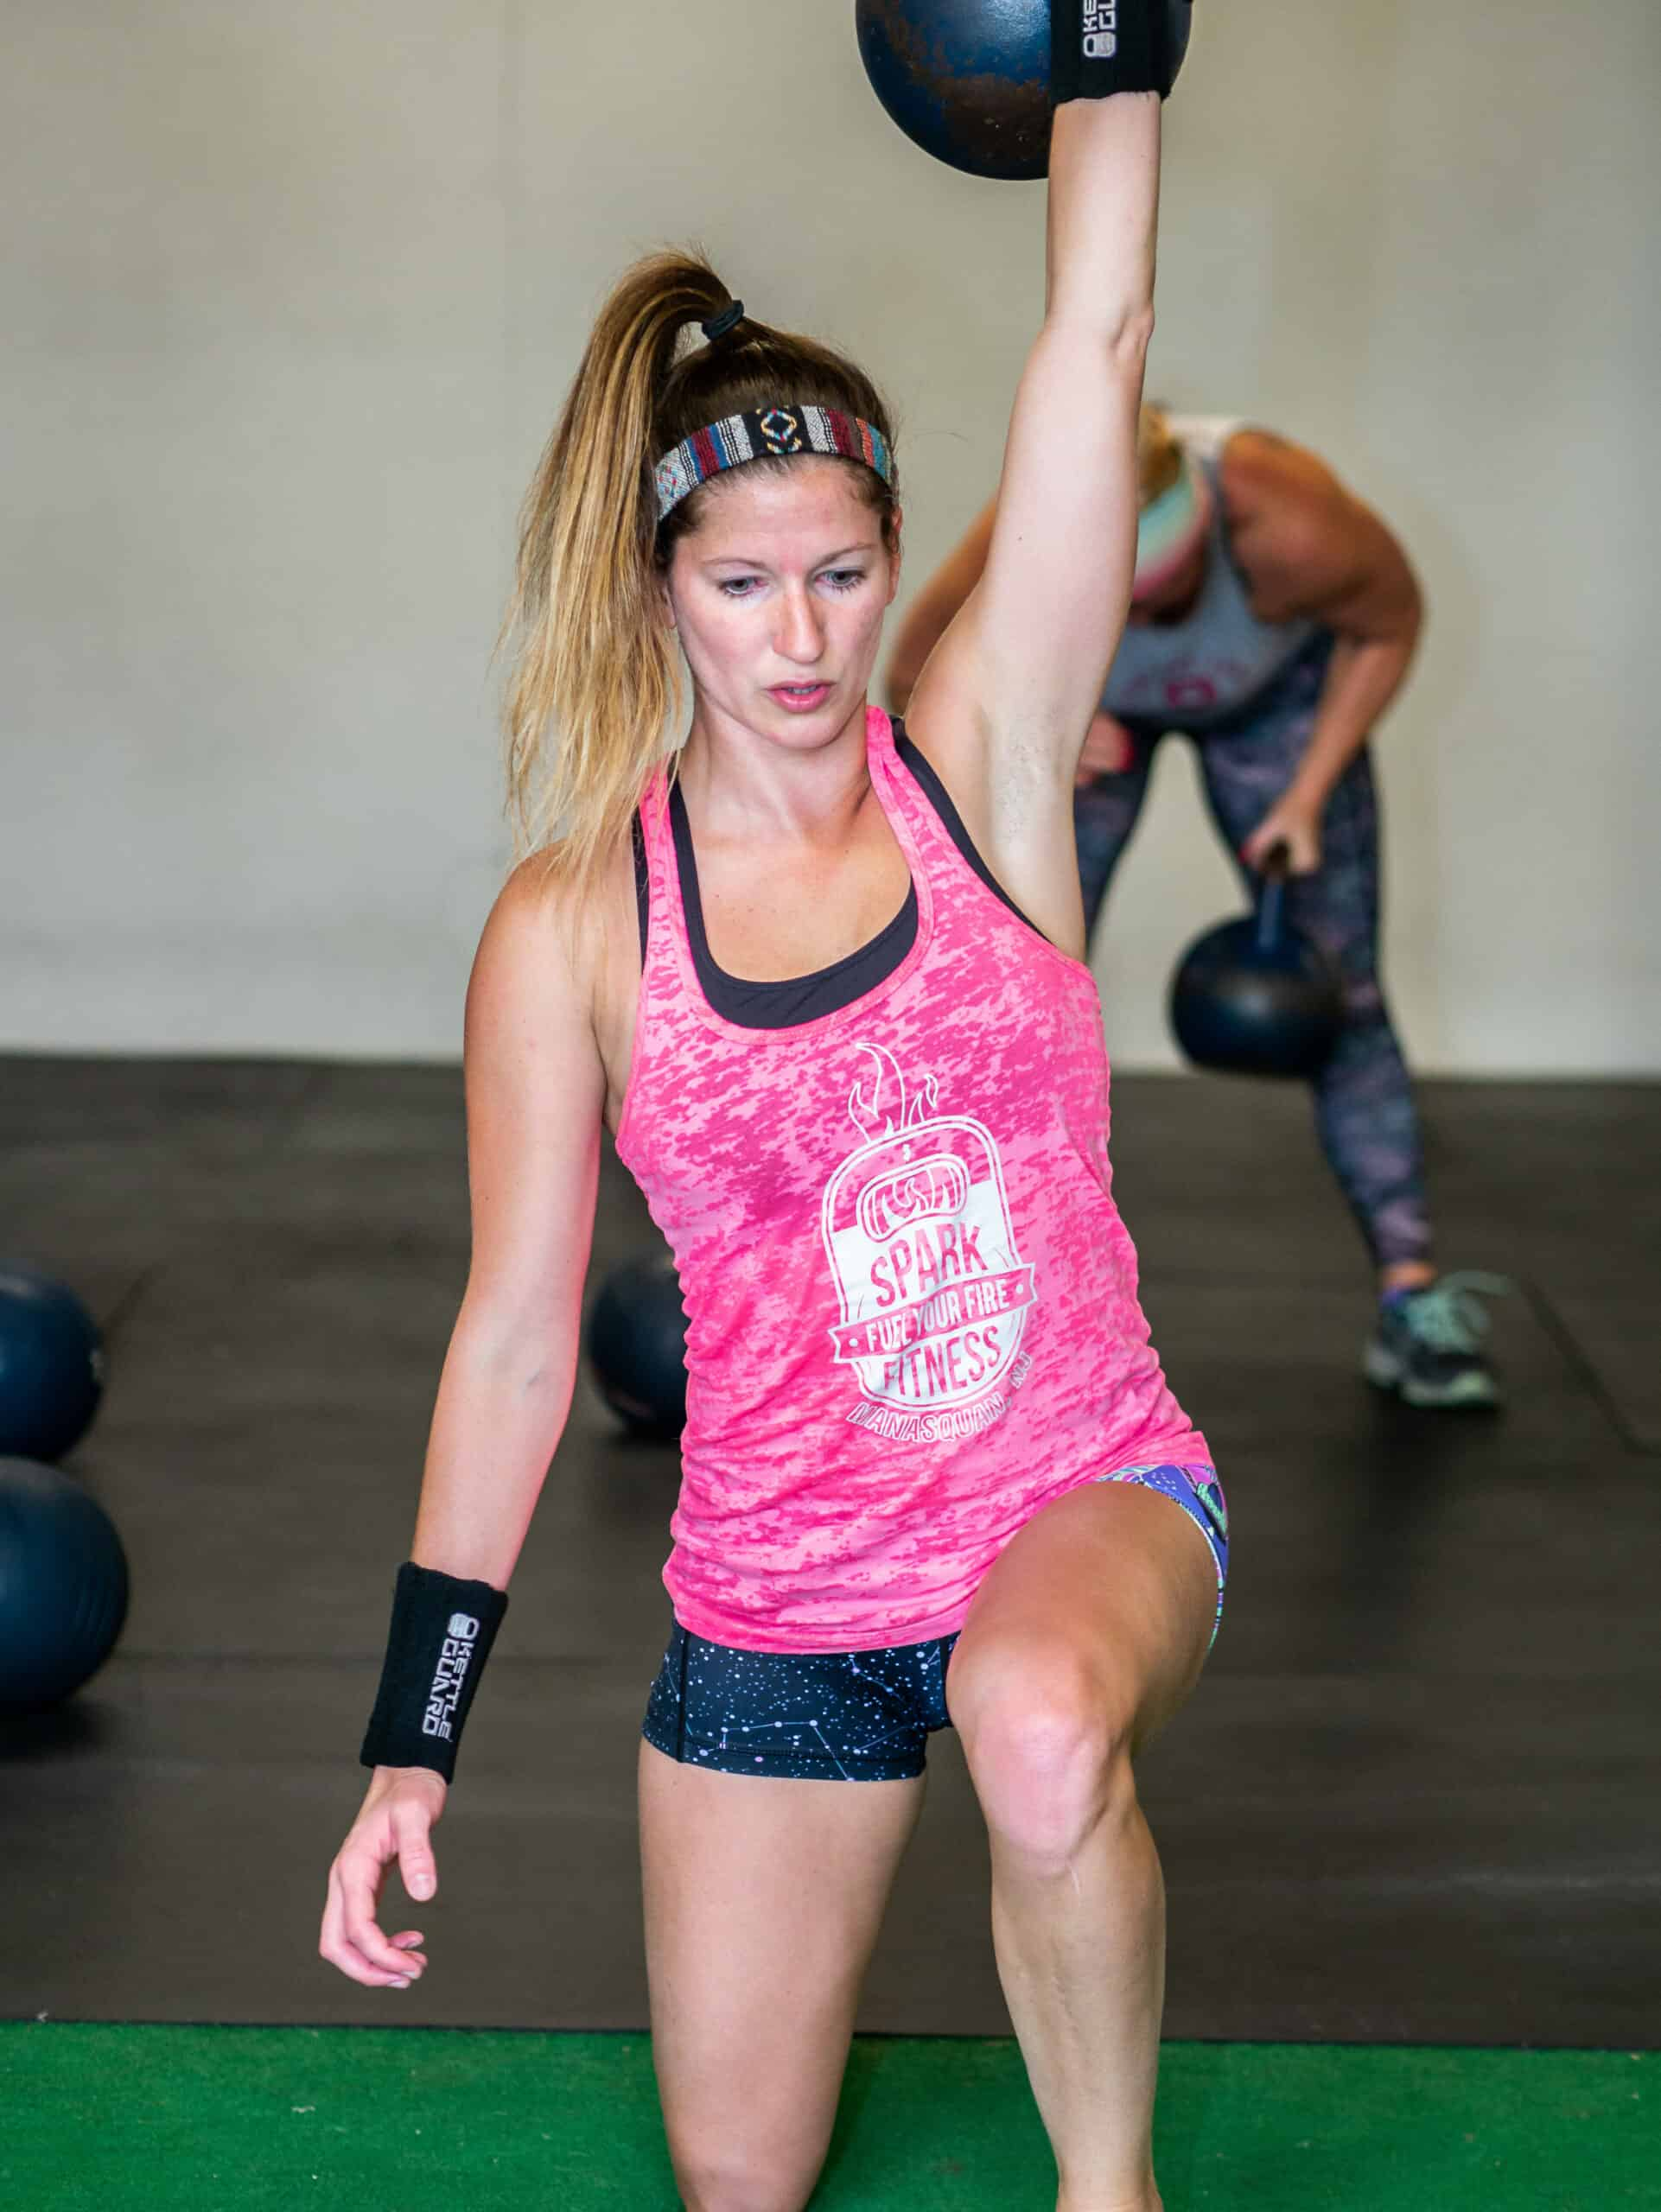 Spark Fitness team member training with a kettlebell at the fitness center